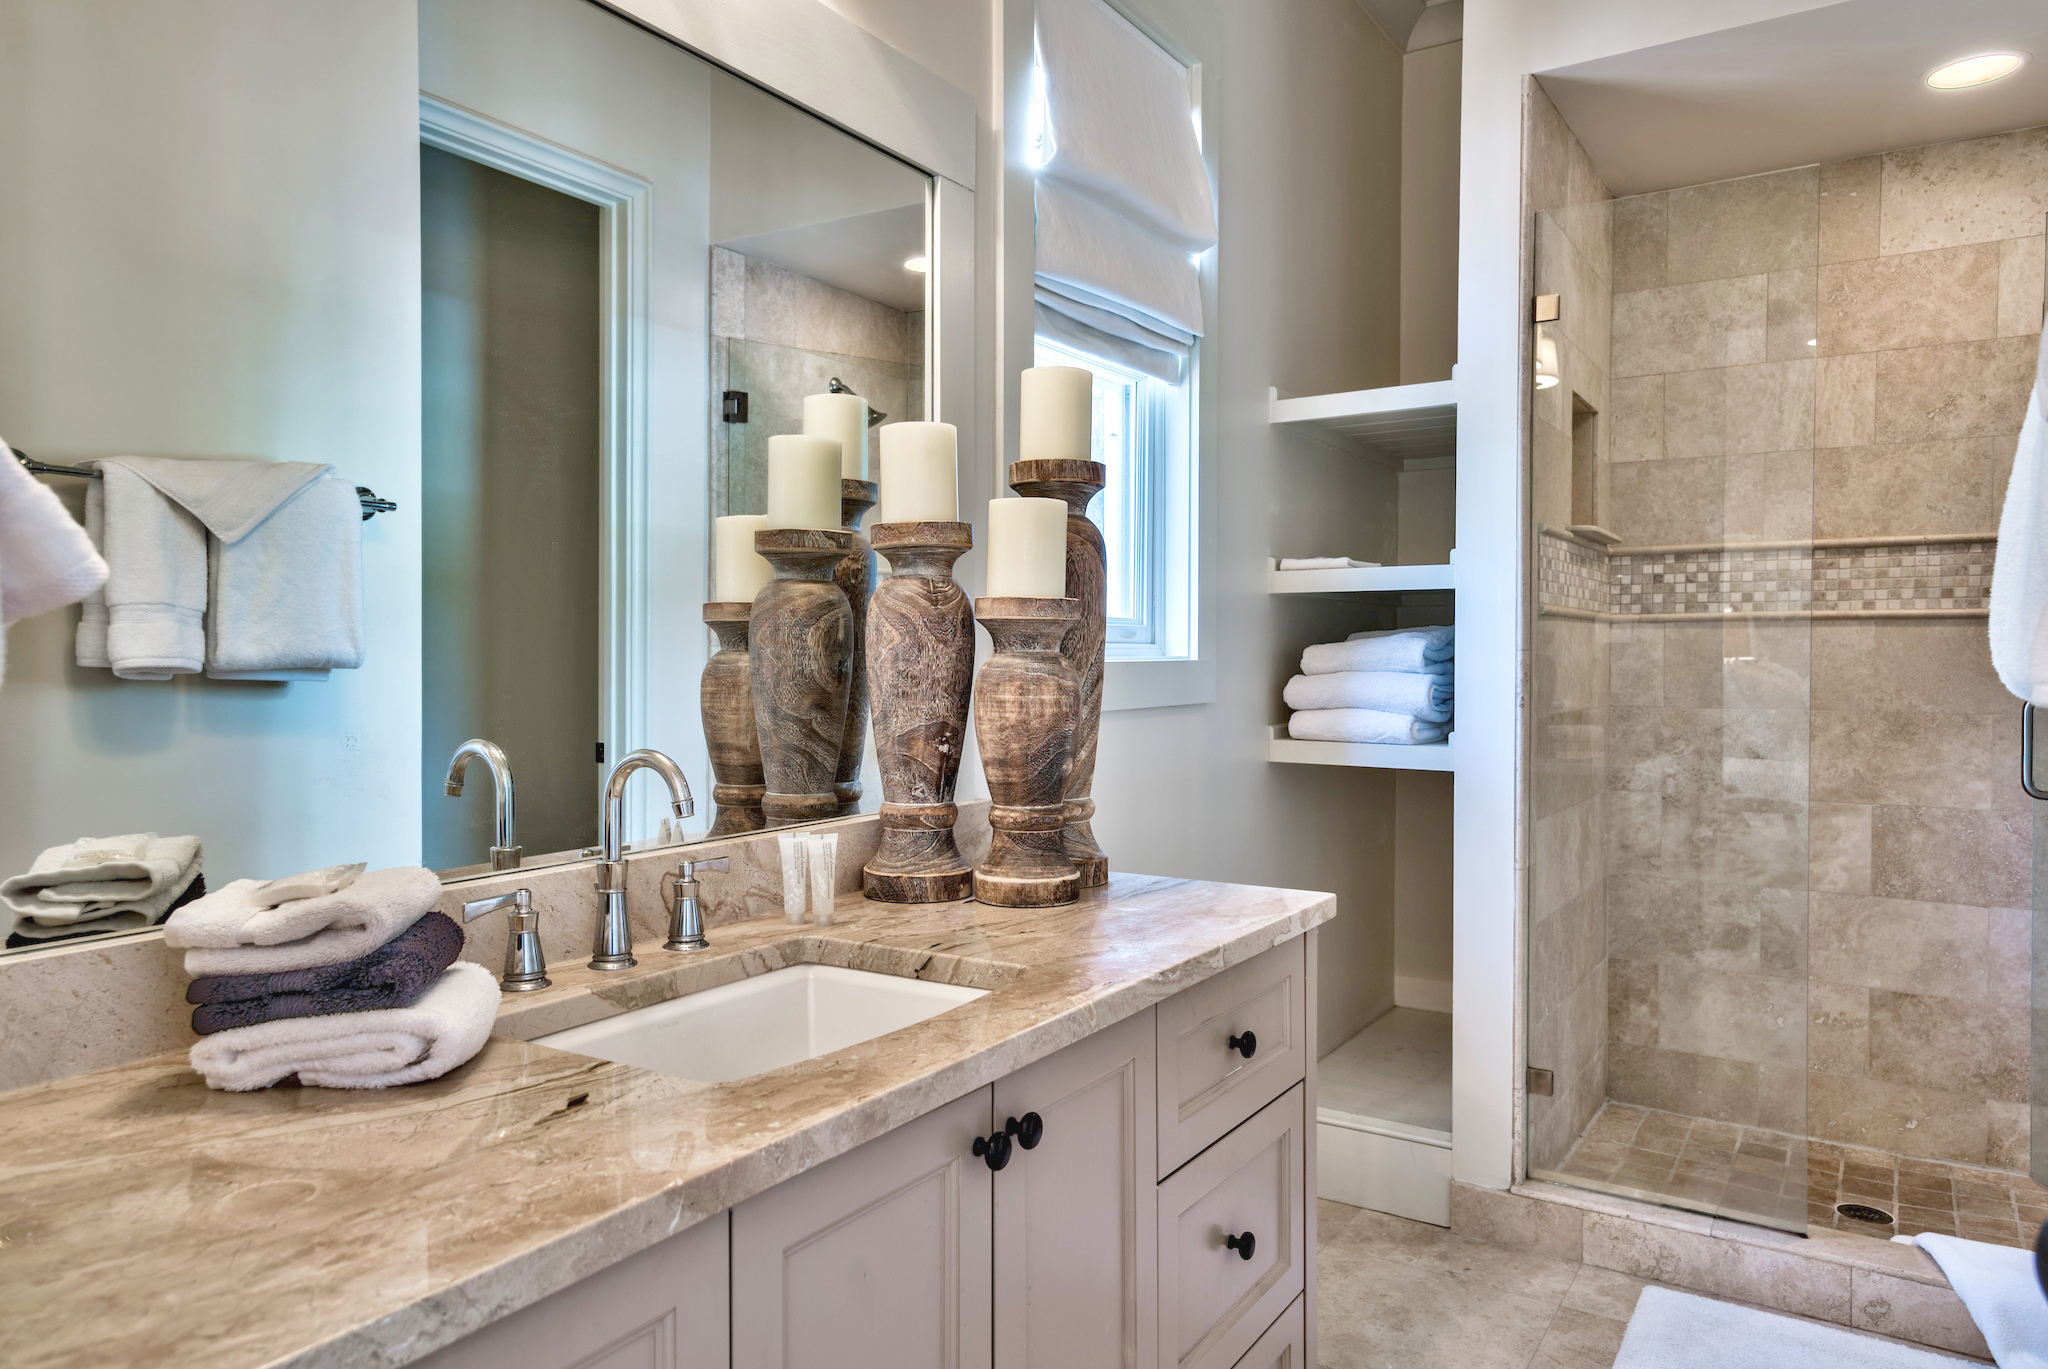 1st floor master bathroom with Large, walk-in shower